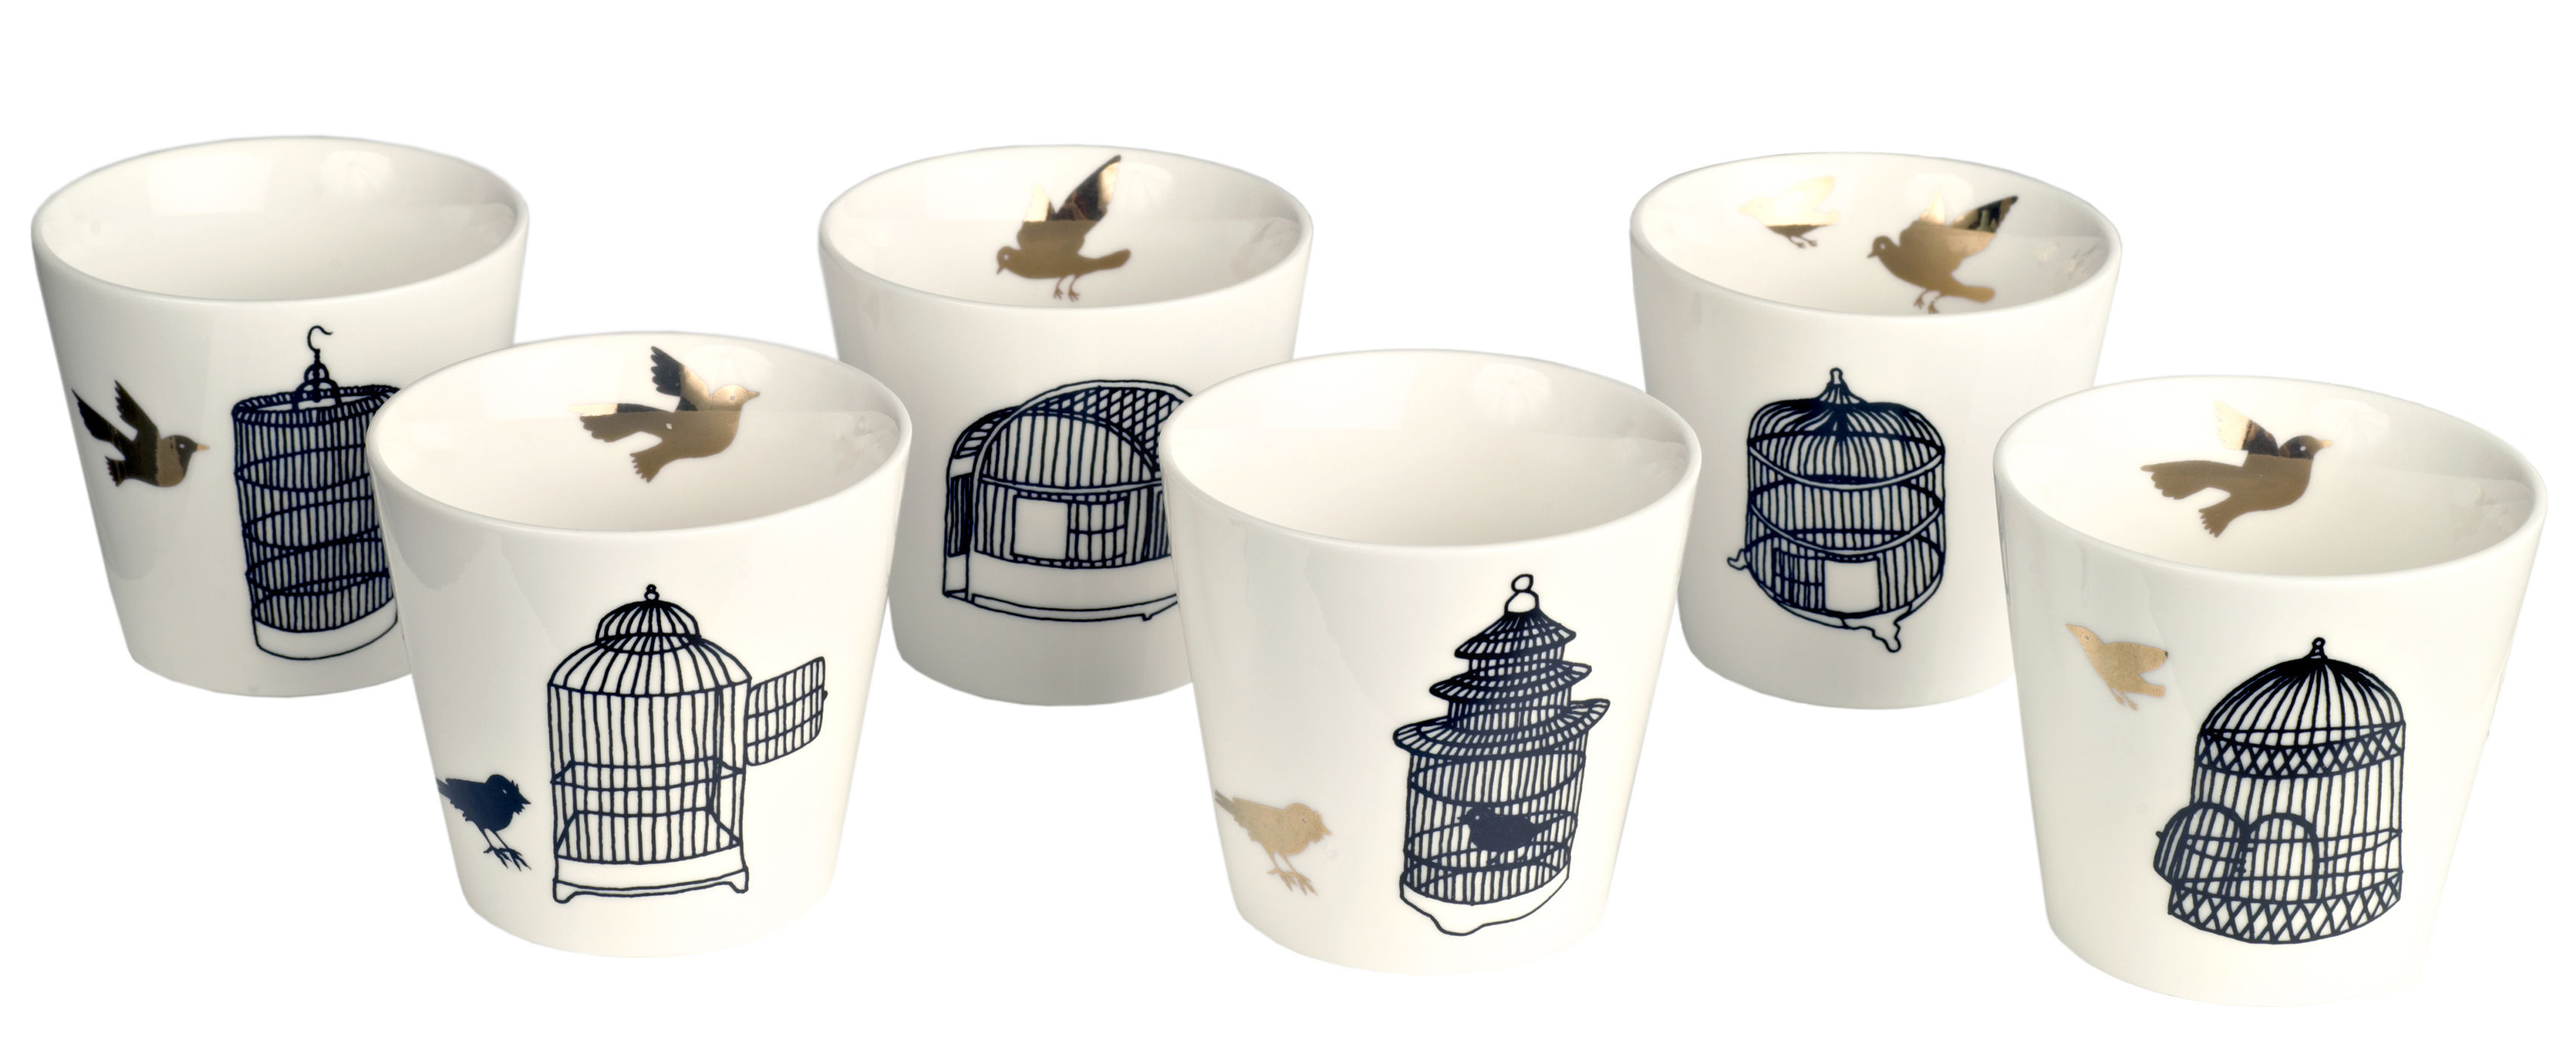 Tableware - Coffee Mugs & Tea Cups - Freedom Birds Cup by Pols Potten - Black / Gold bird - Varnished china